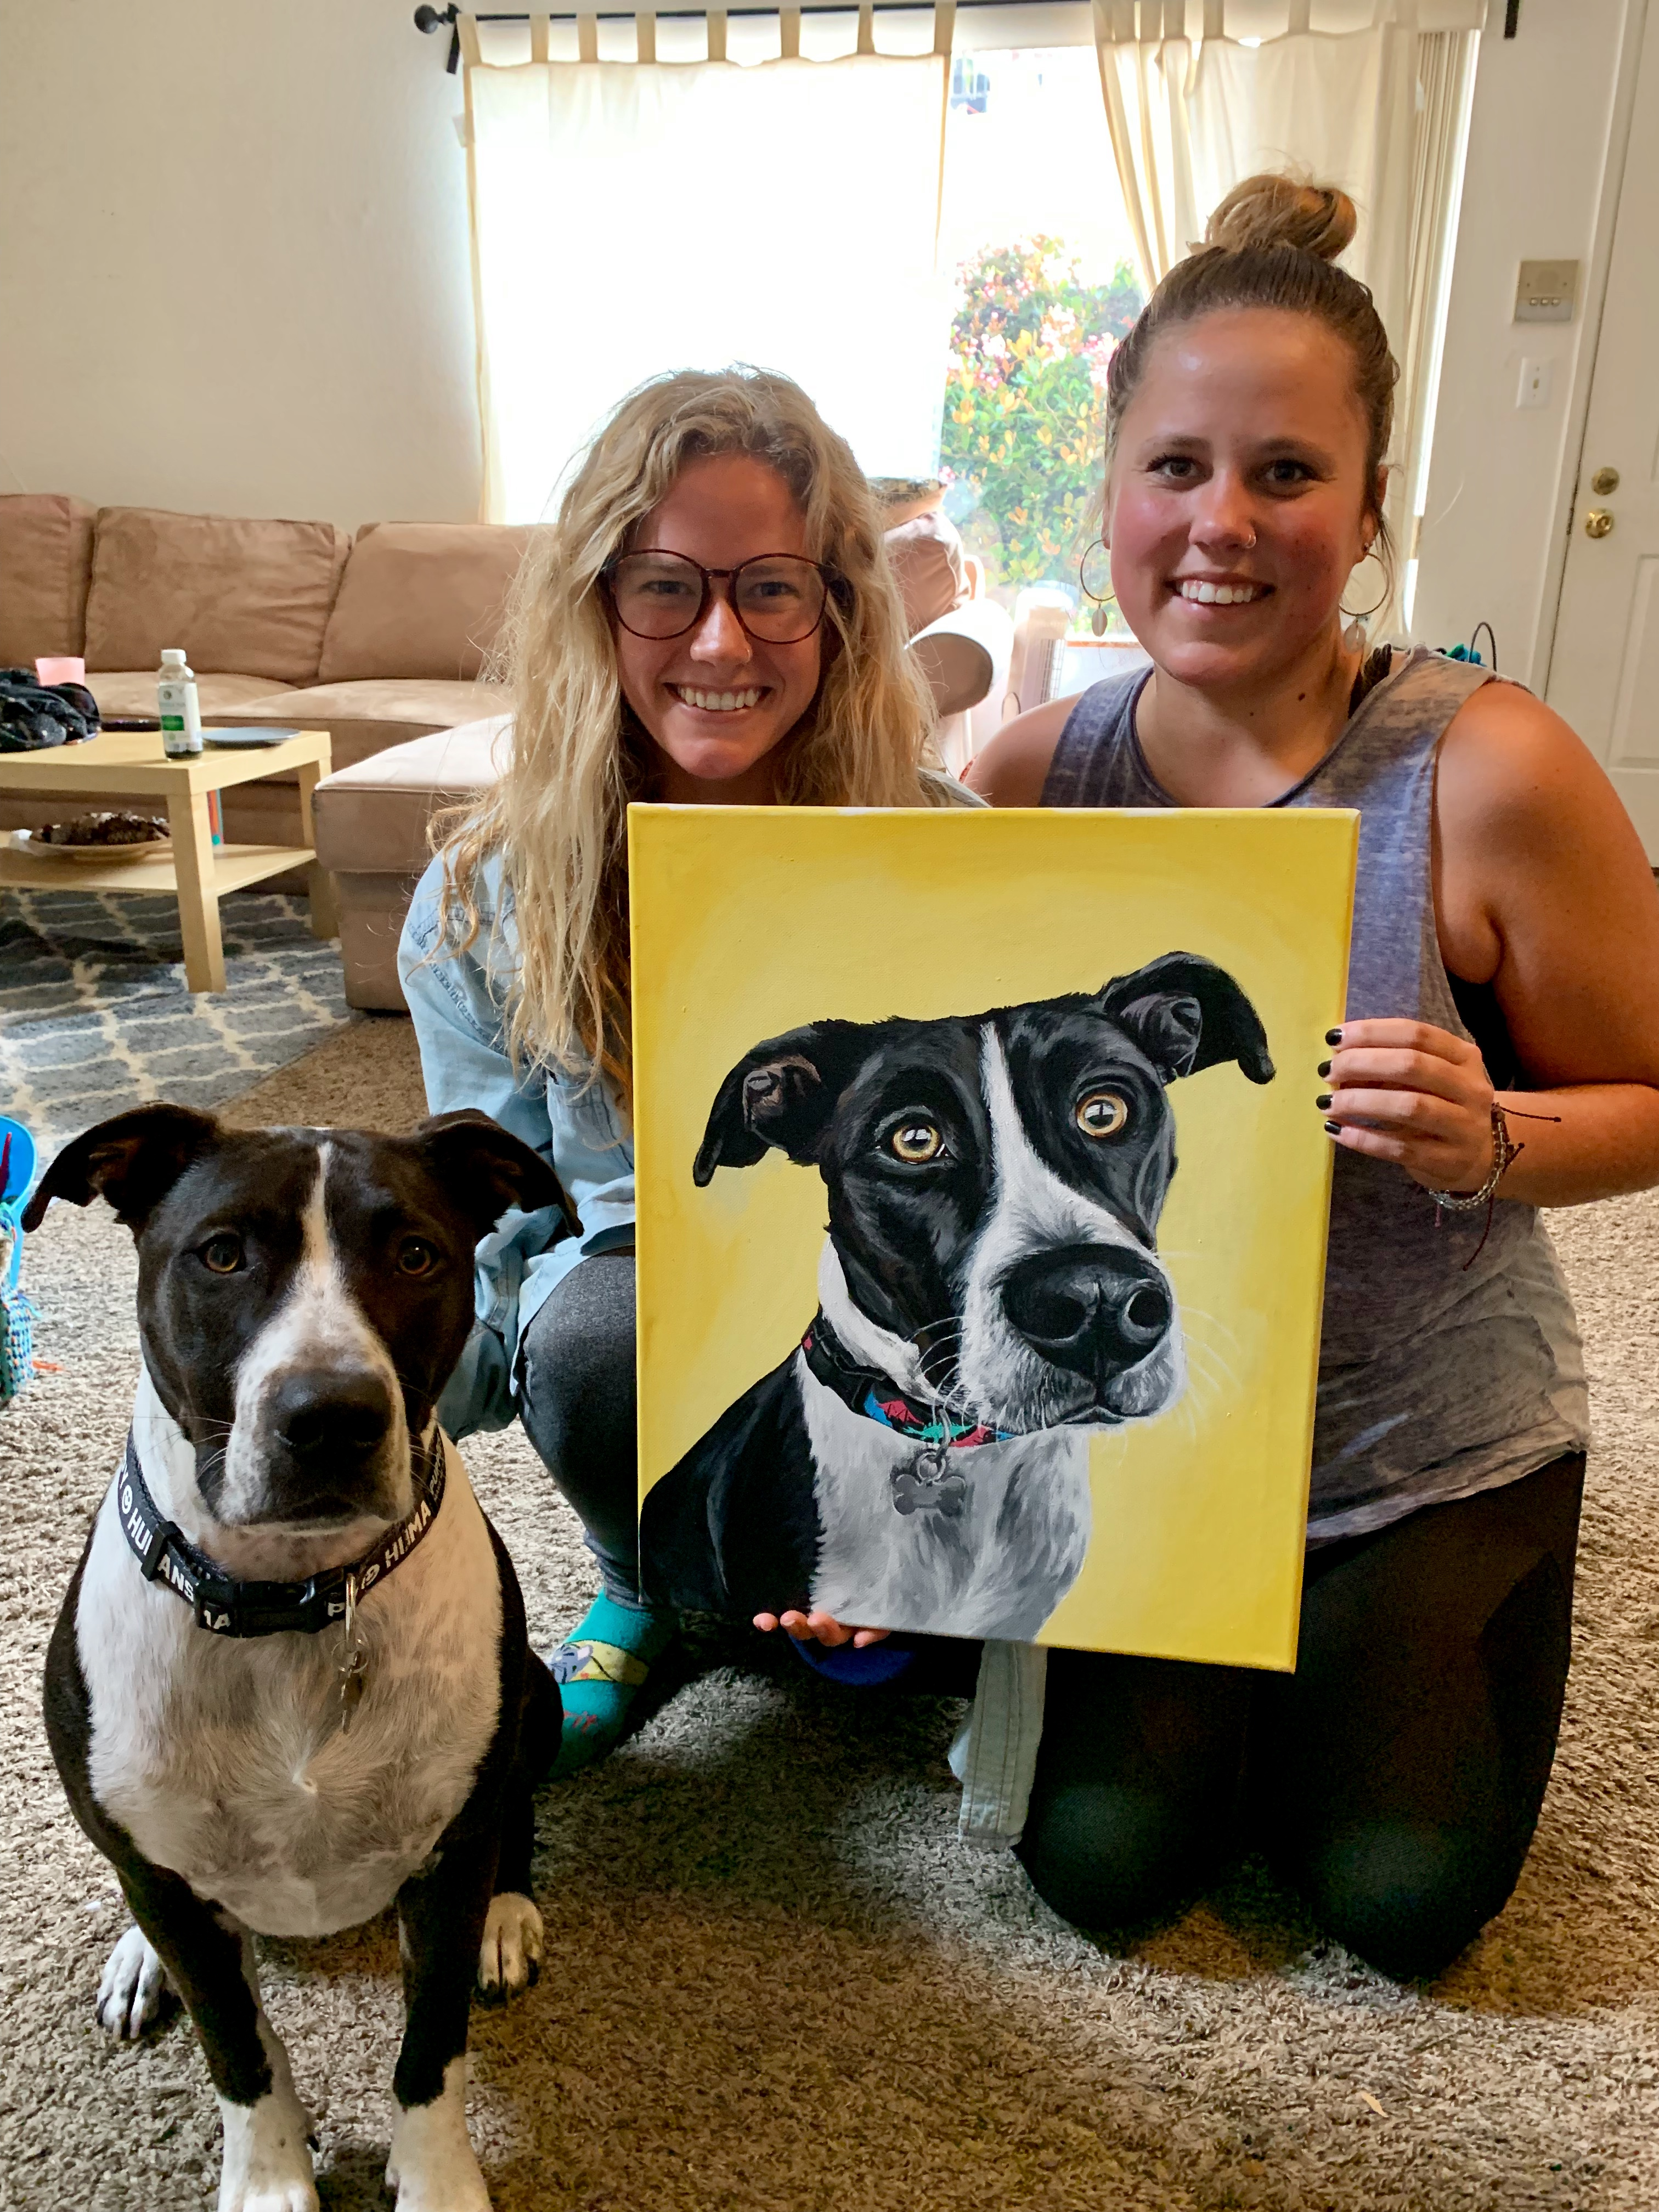 Girls with pet painting and dog